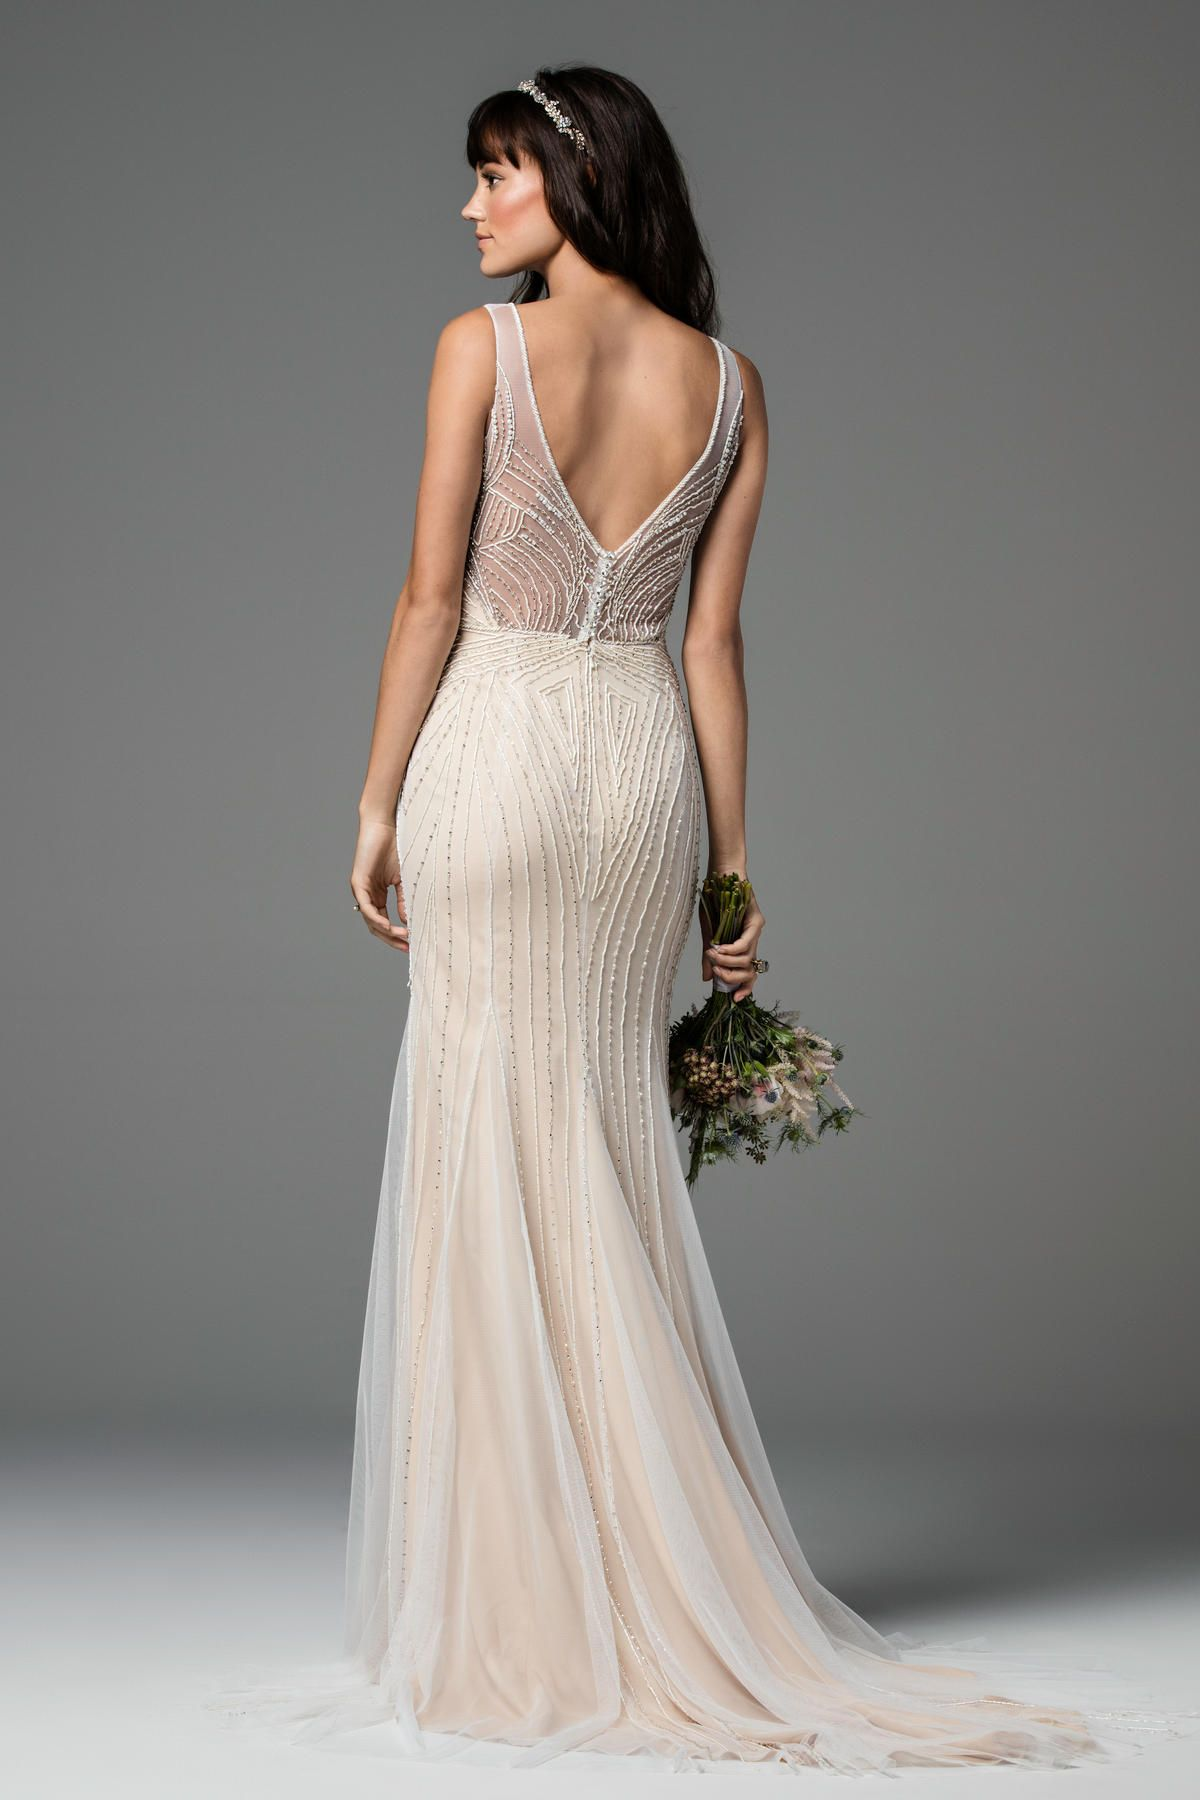 Oceana gown from Willowby by Watters is available at Sincerely, The ...